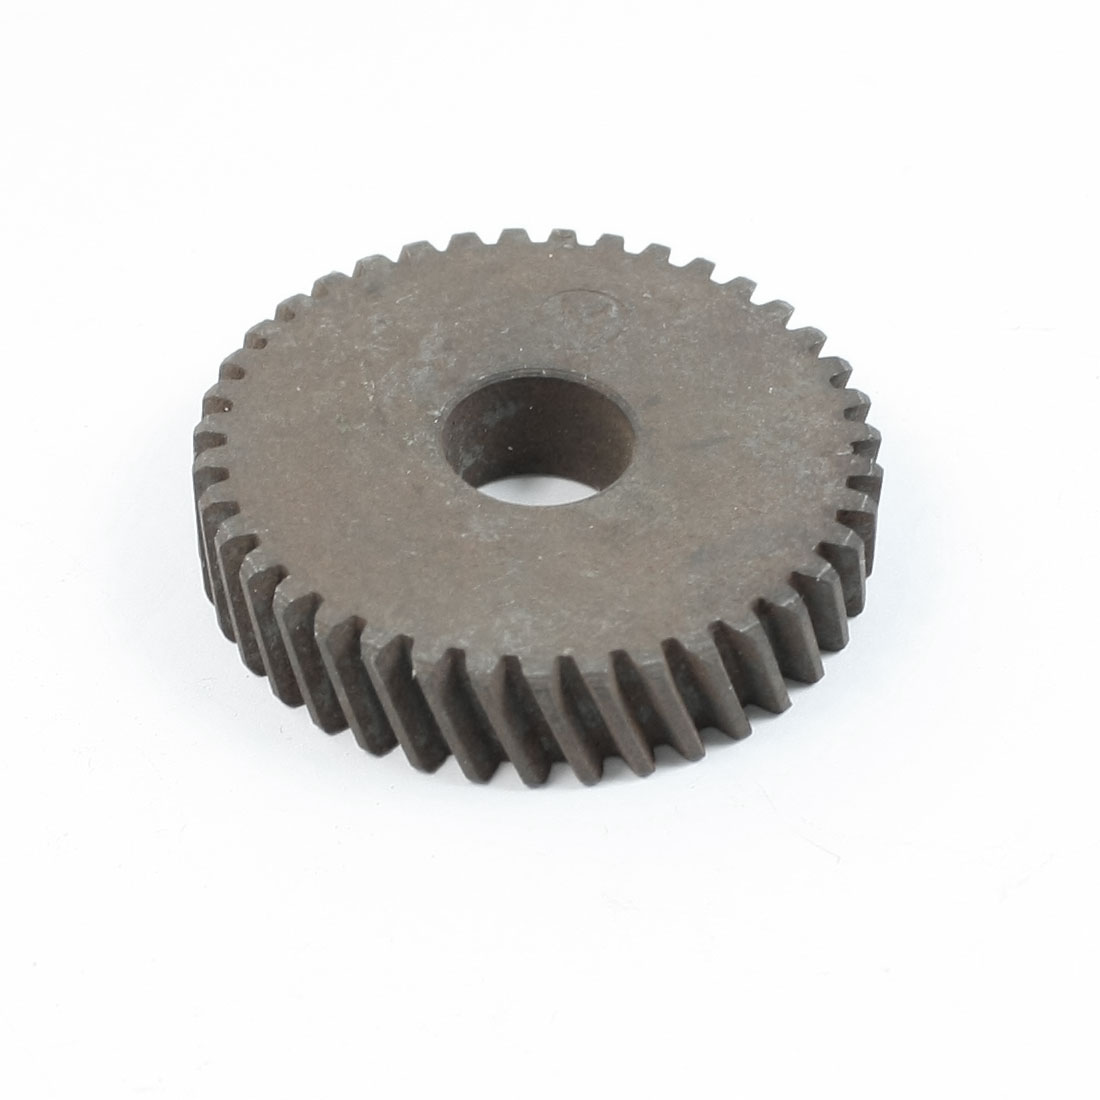 Replacement 39 Tooth Spiral Bevel Gear for Hitachi 10A Electric Hand Drill